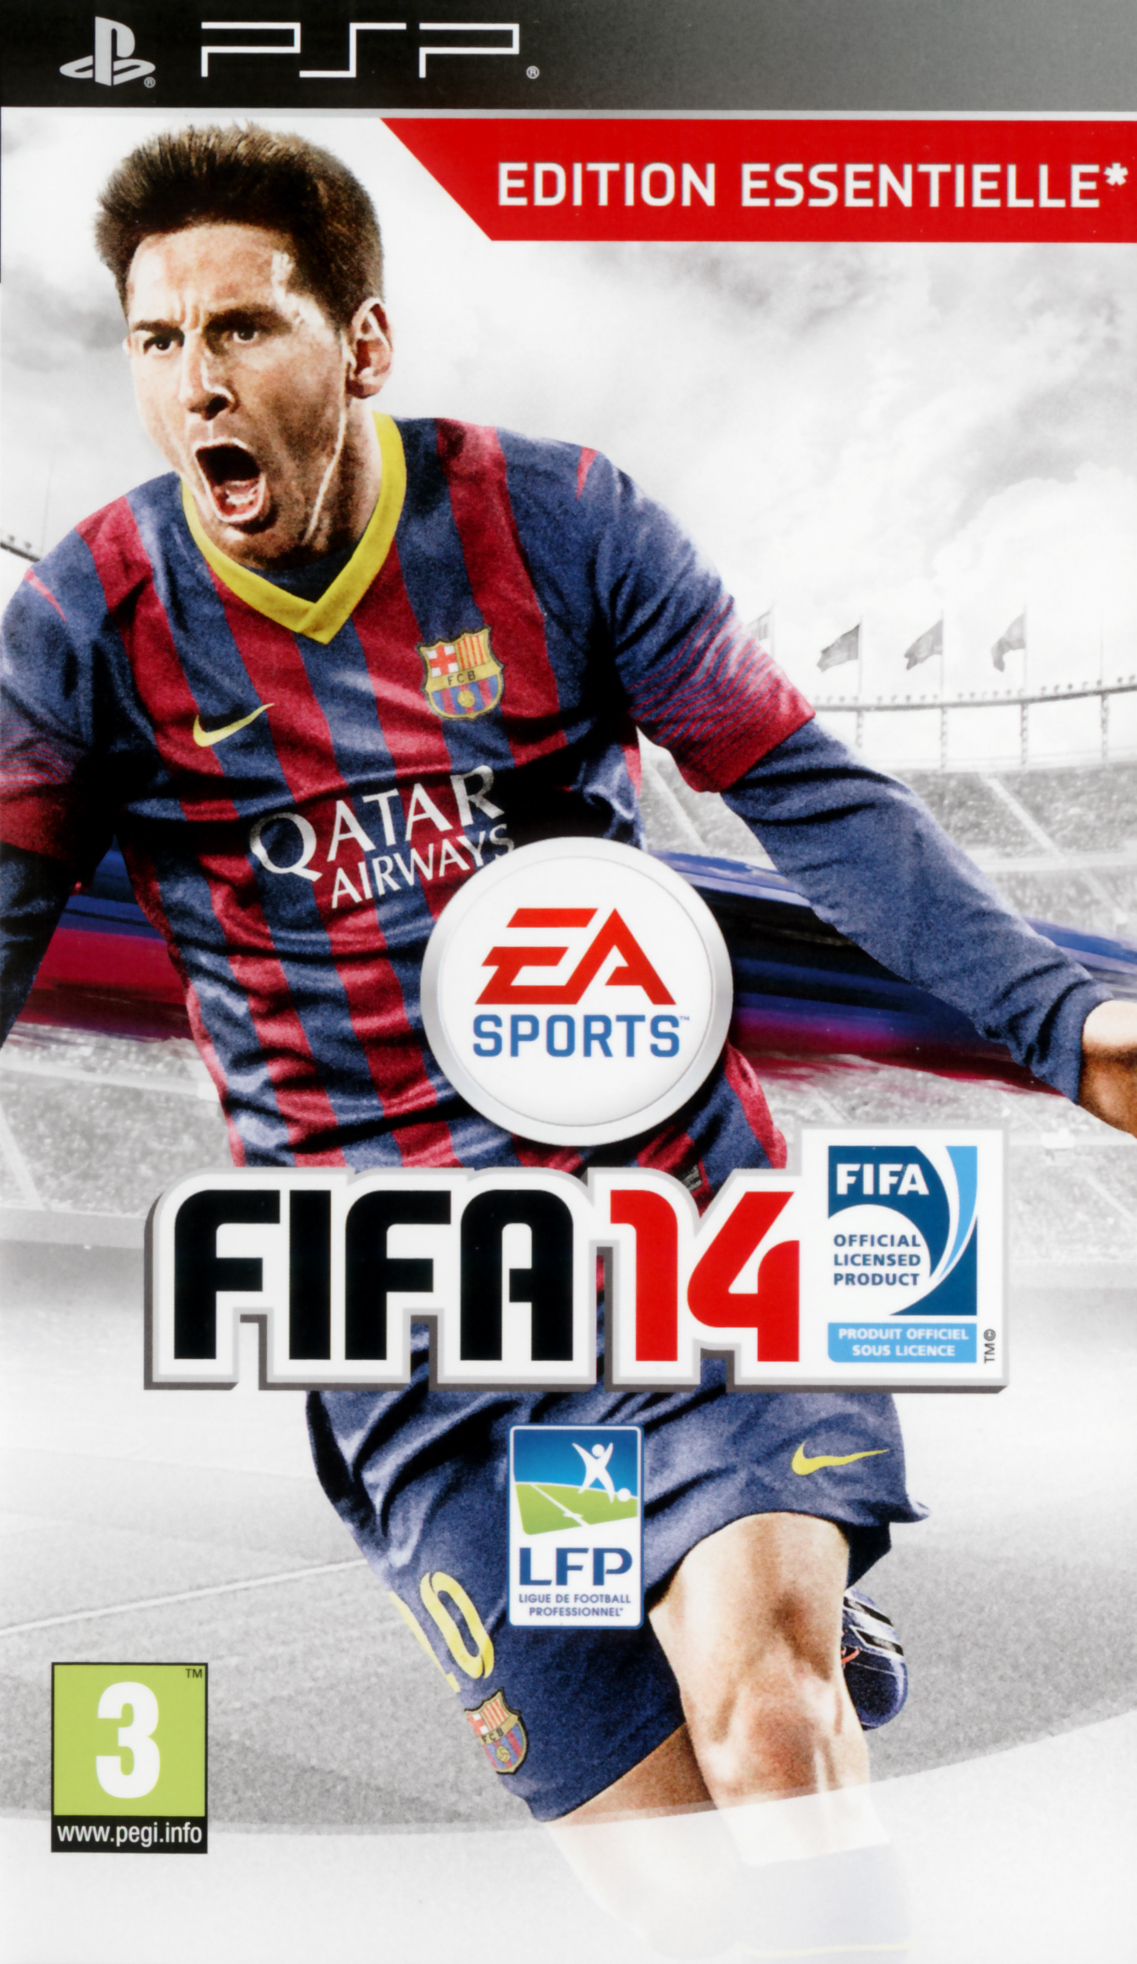 telecharger gratuitement FIFA 14